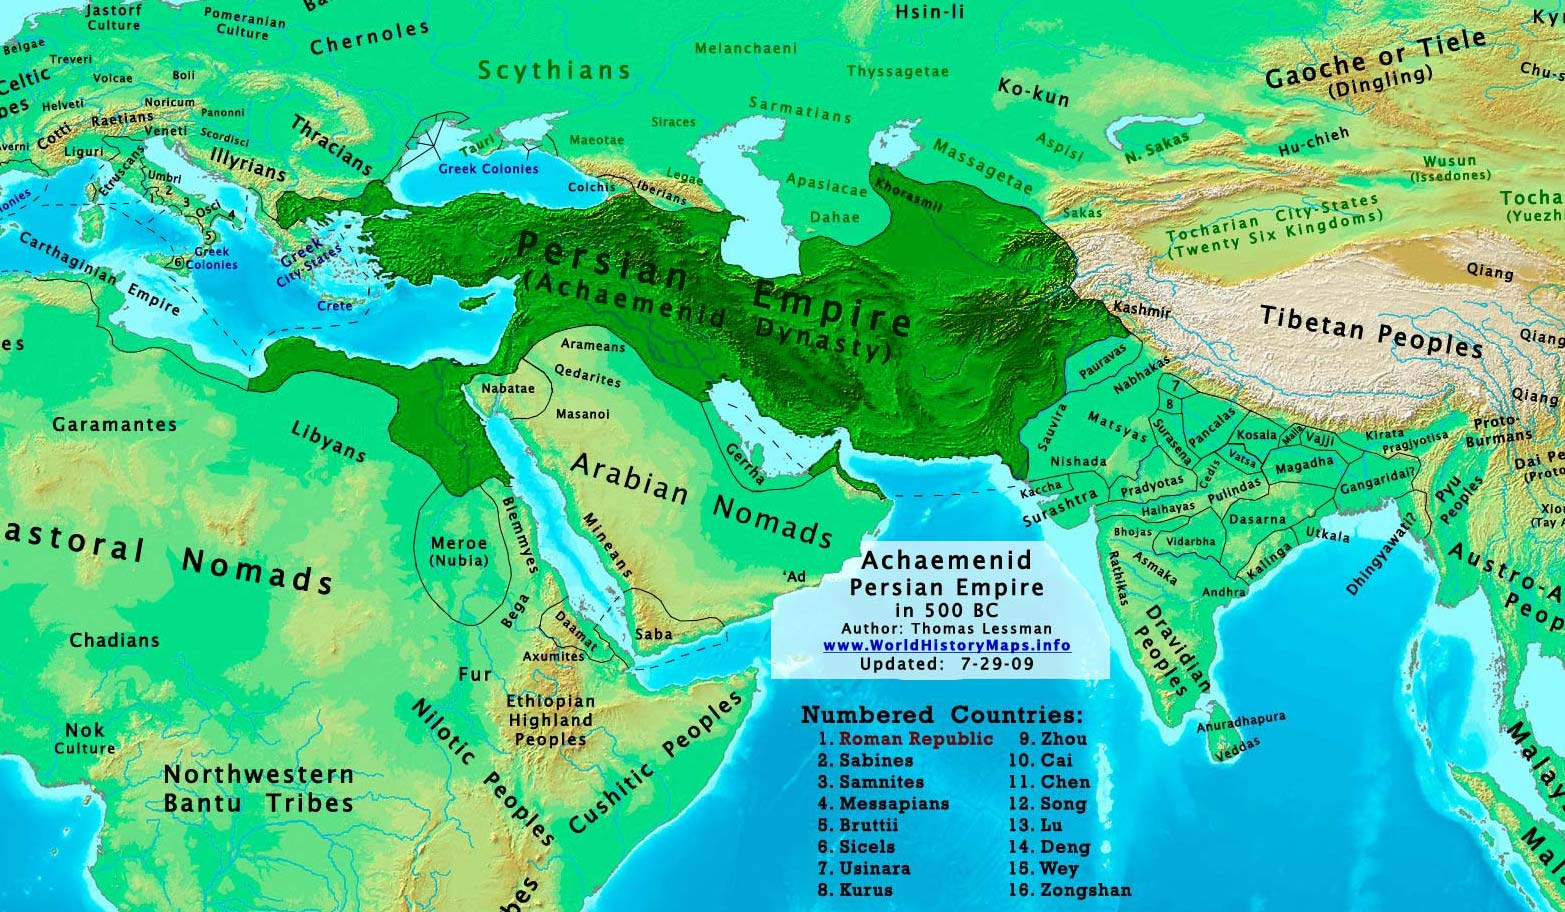 World history maps by thomas lessman specialized ancient maps achaemenid empire gumiabroncs Gallery